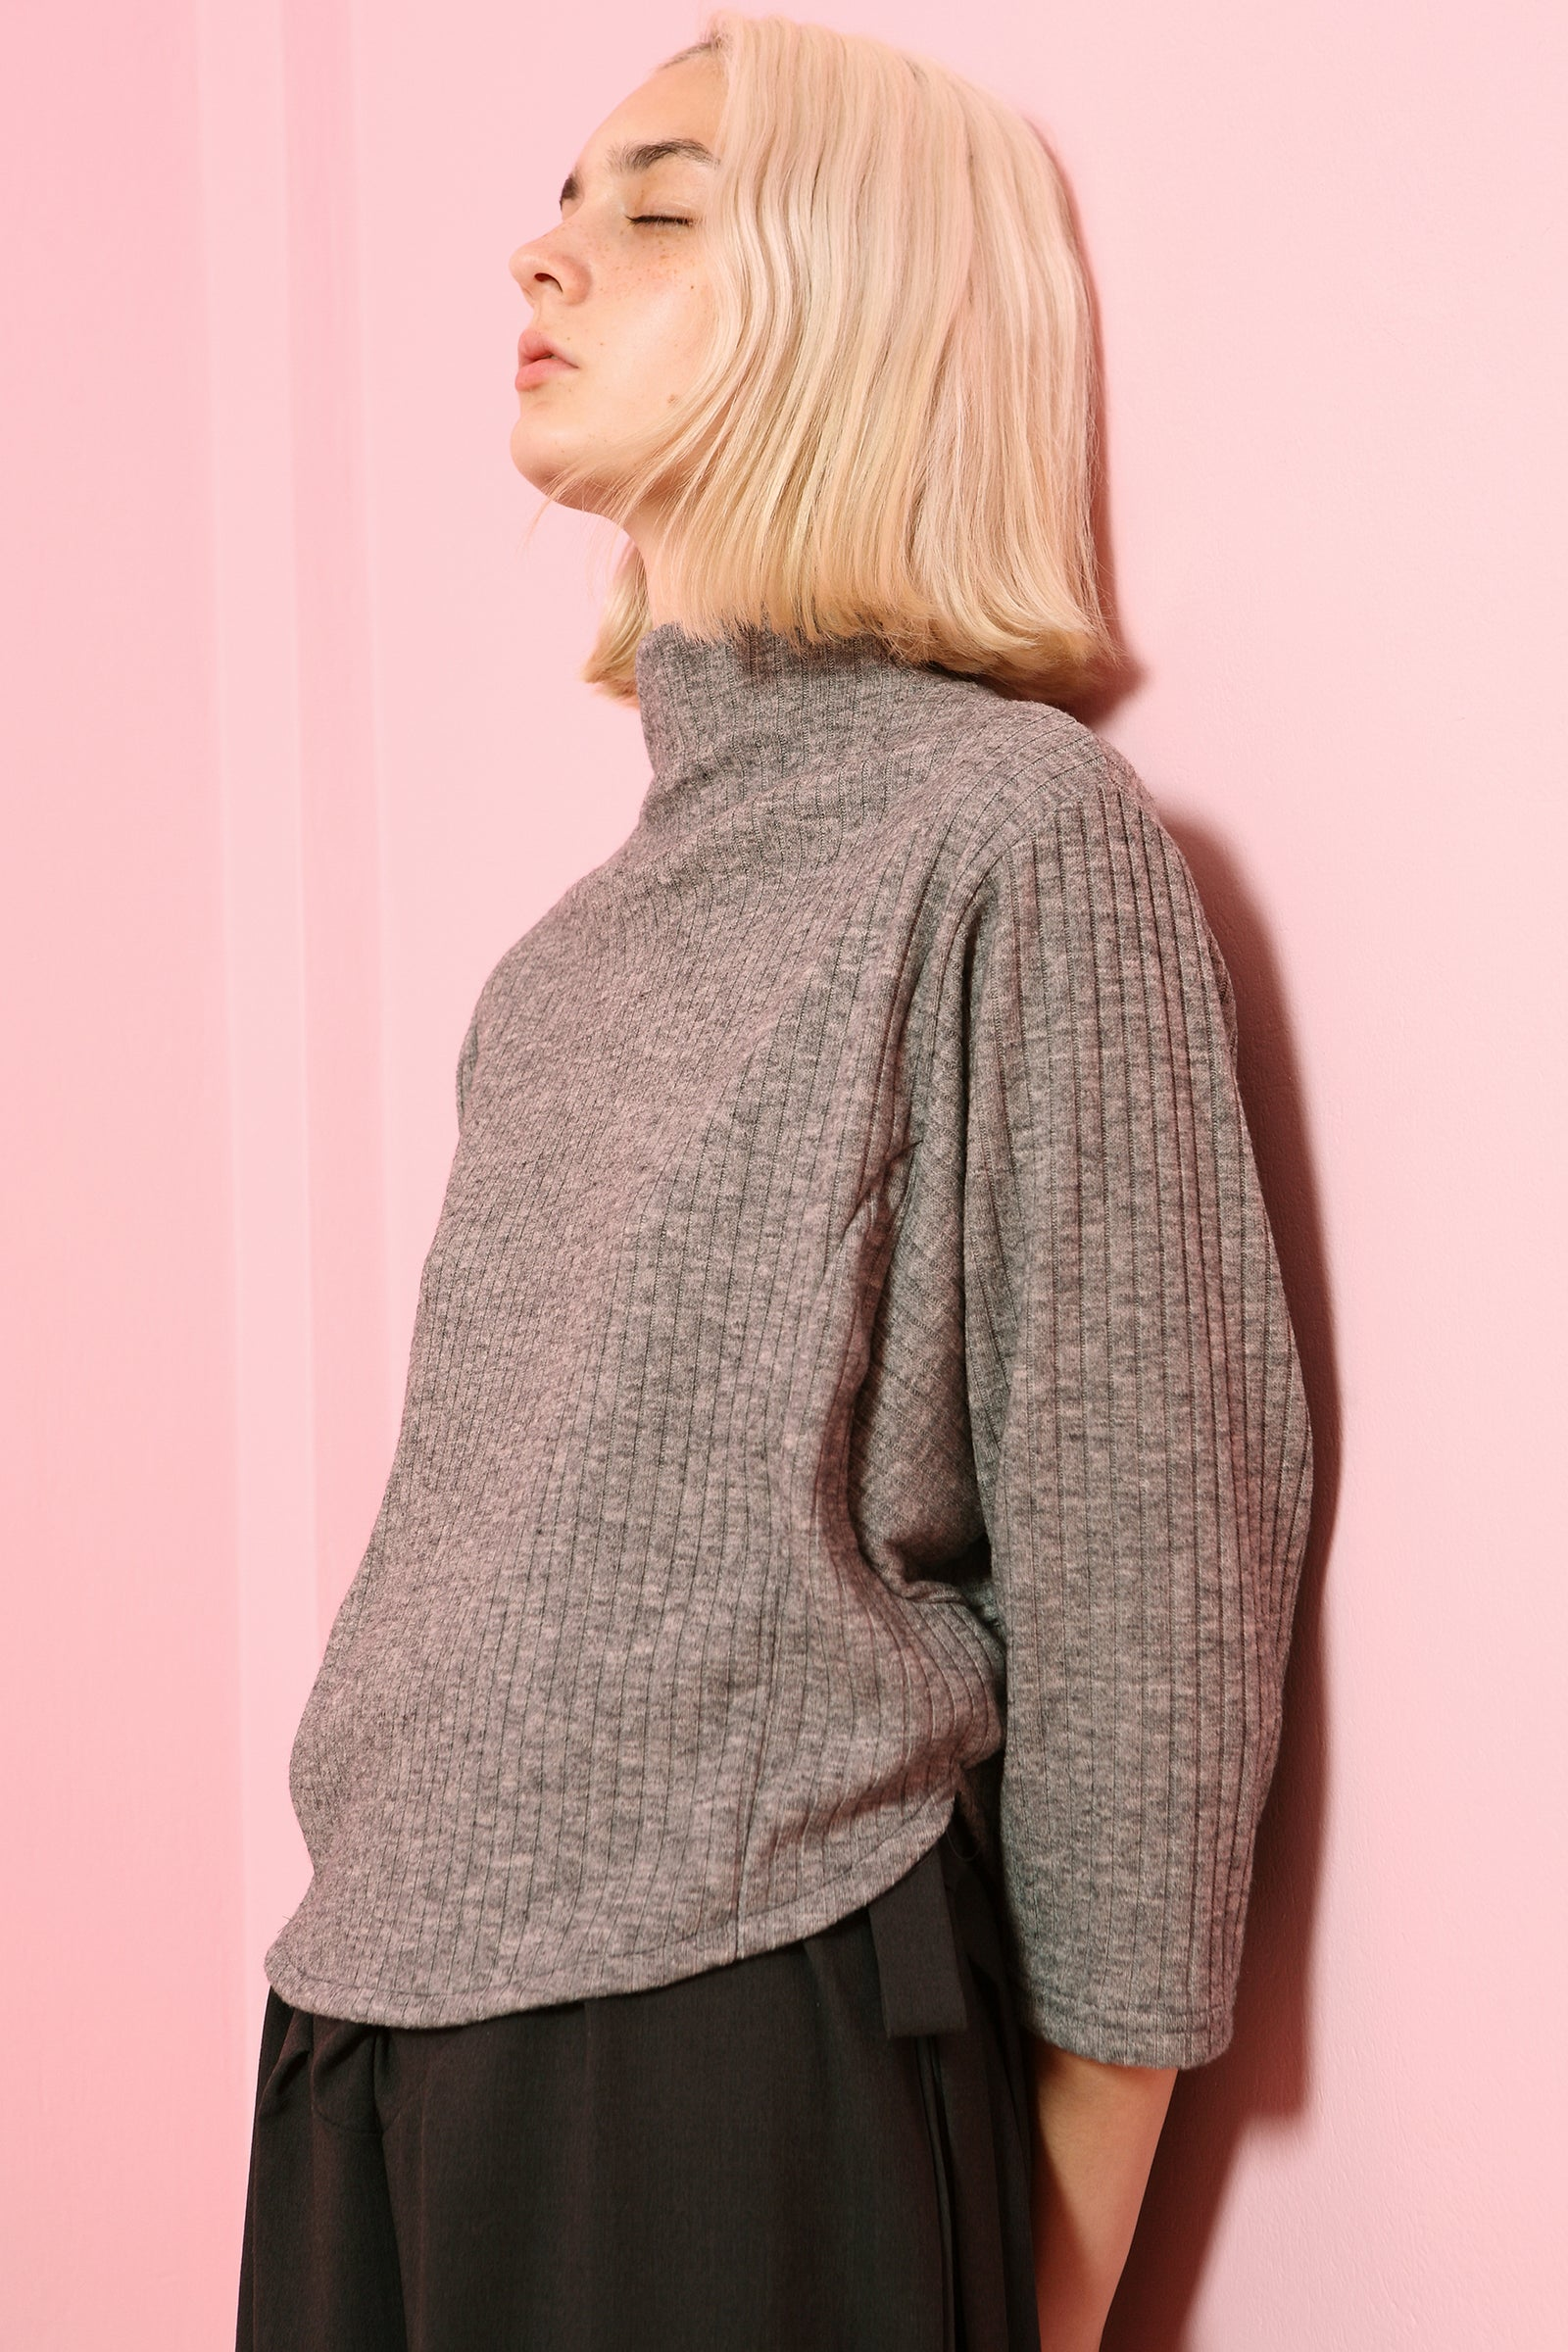 Top Chouchou Turtleneck in Knit Colors